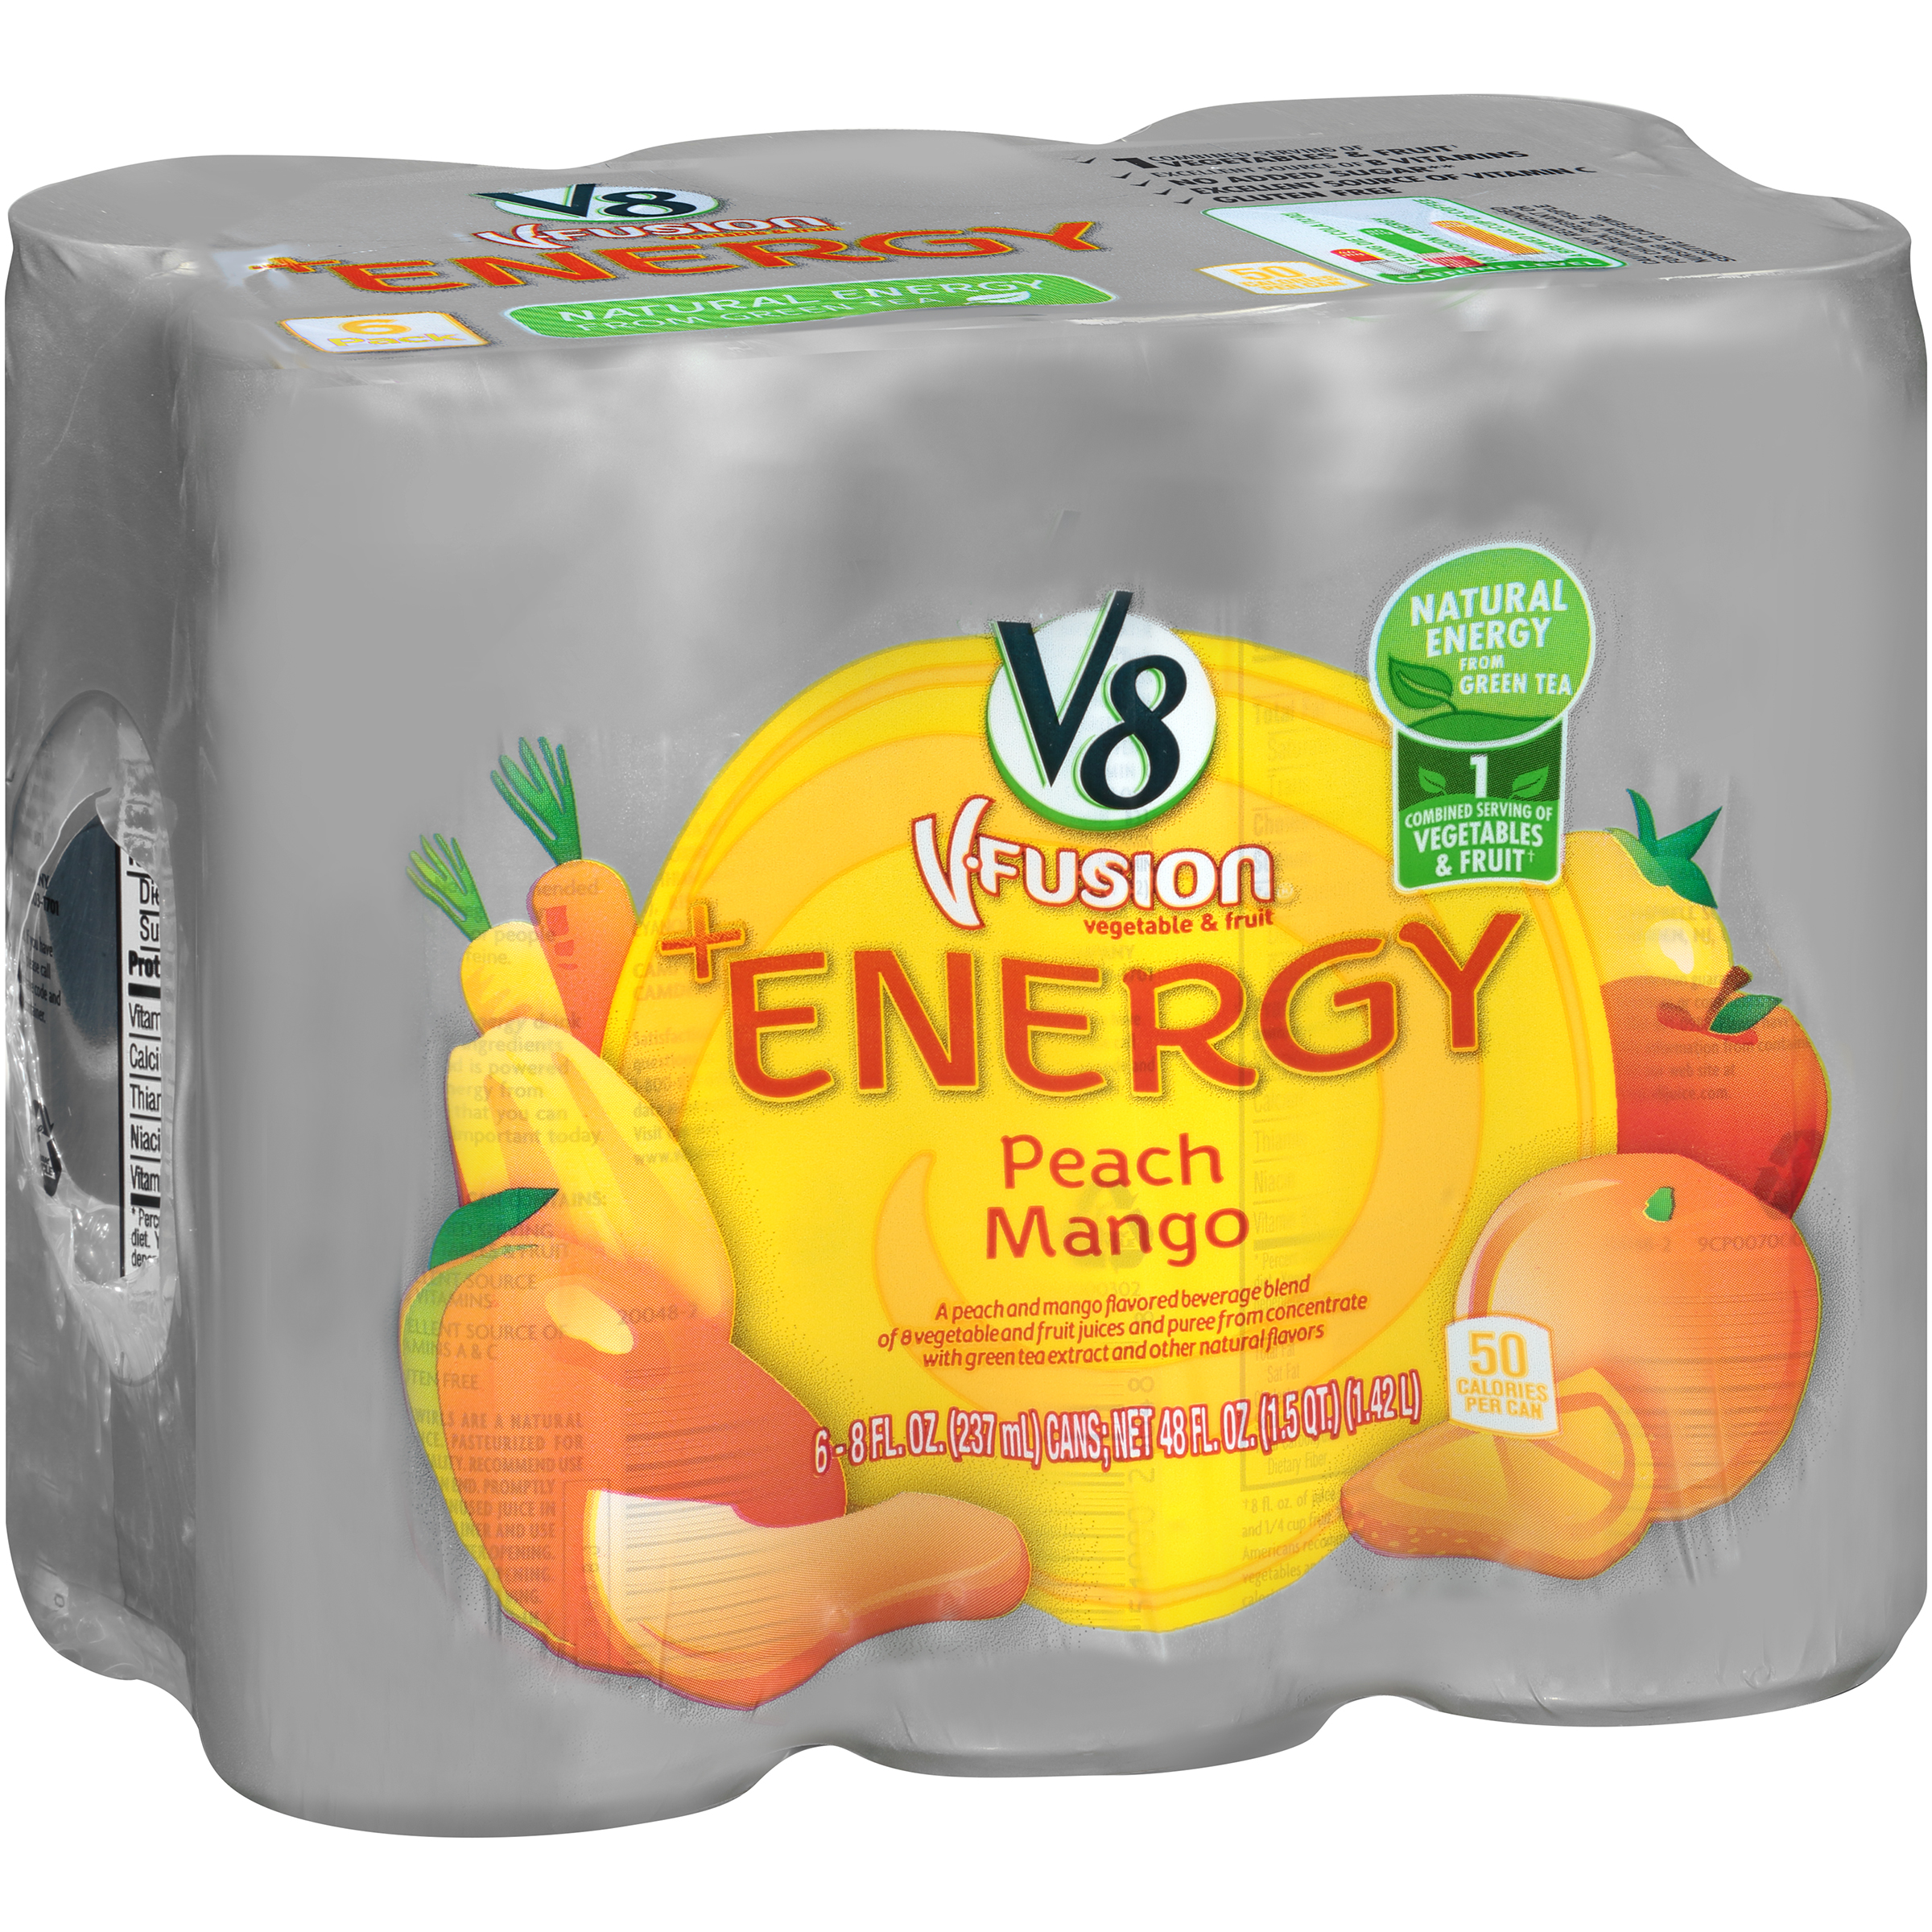 V8 V-Fusion +Energy Peach Mango Juice 8oz 6 pack